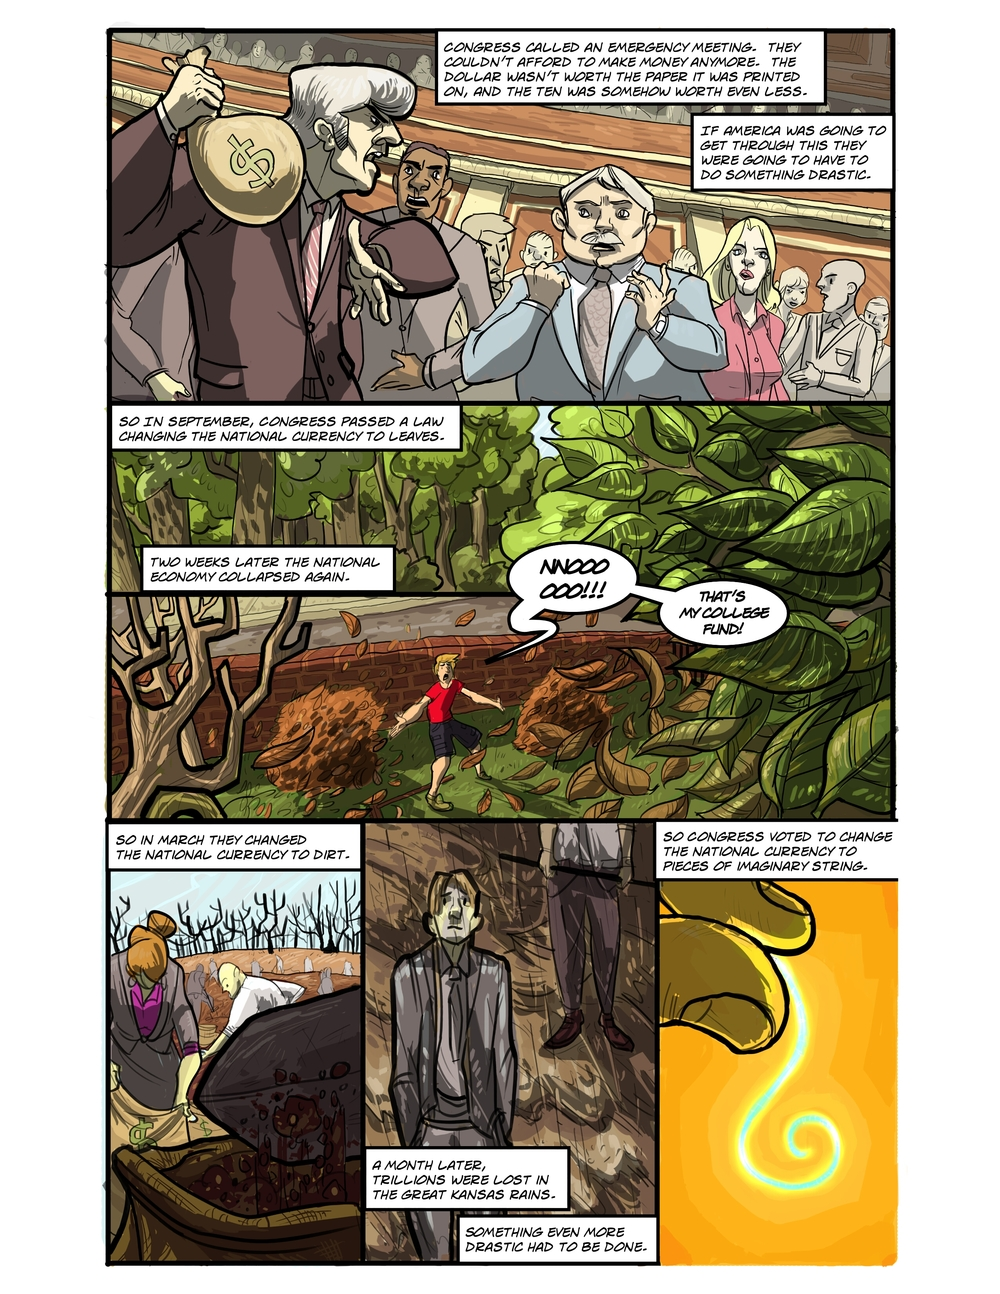 IMAGINARY STRING page 2 - story 20 in The Book of Lies